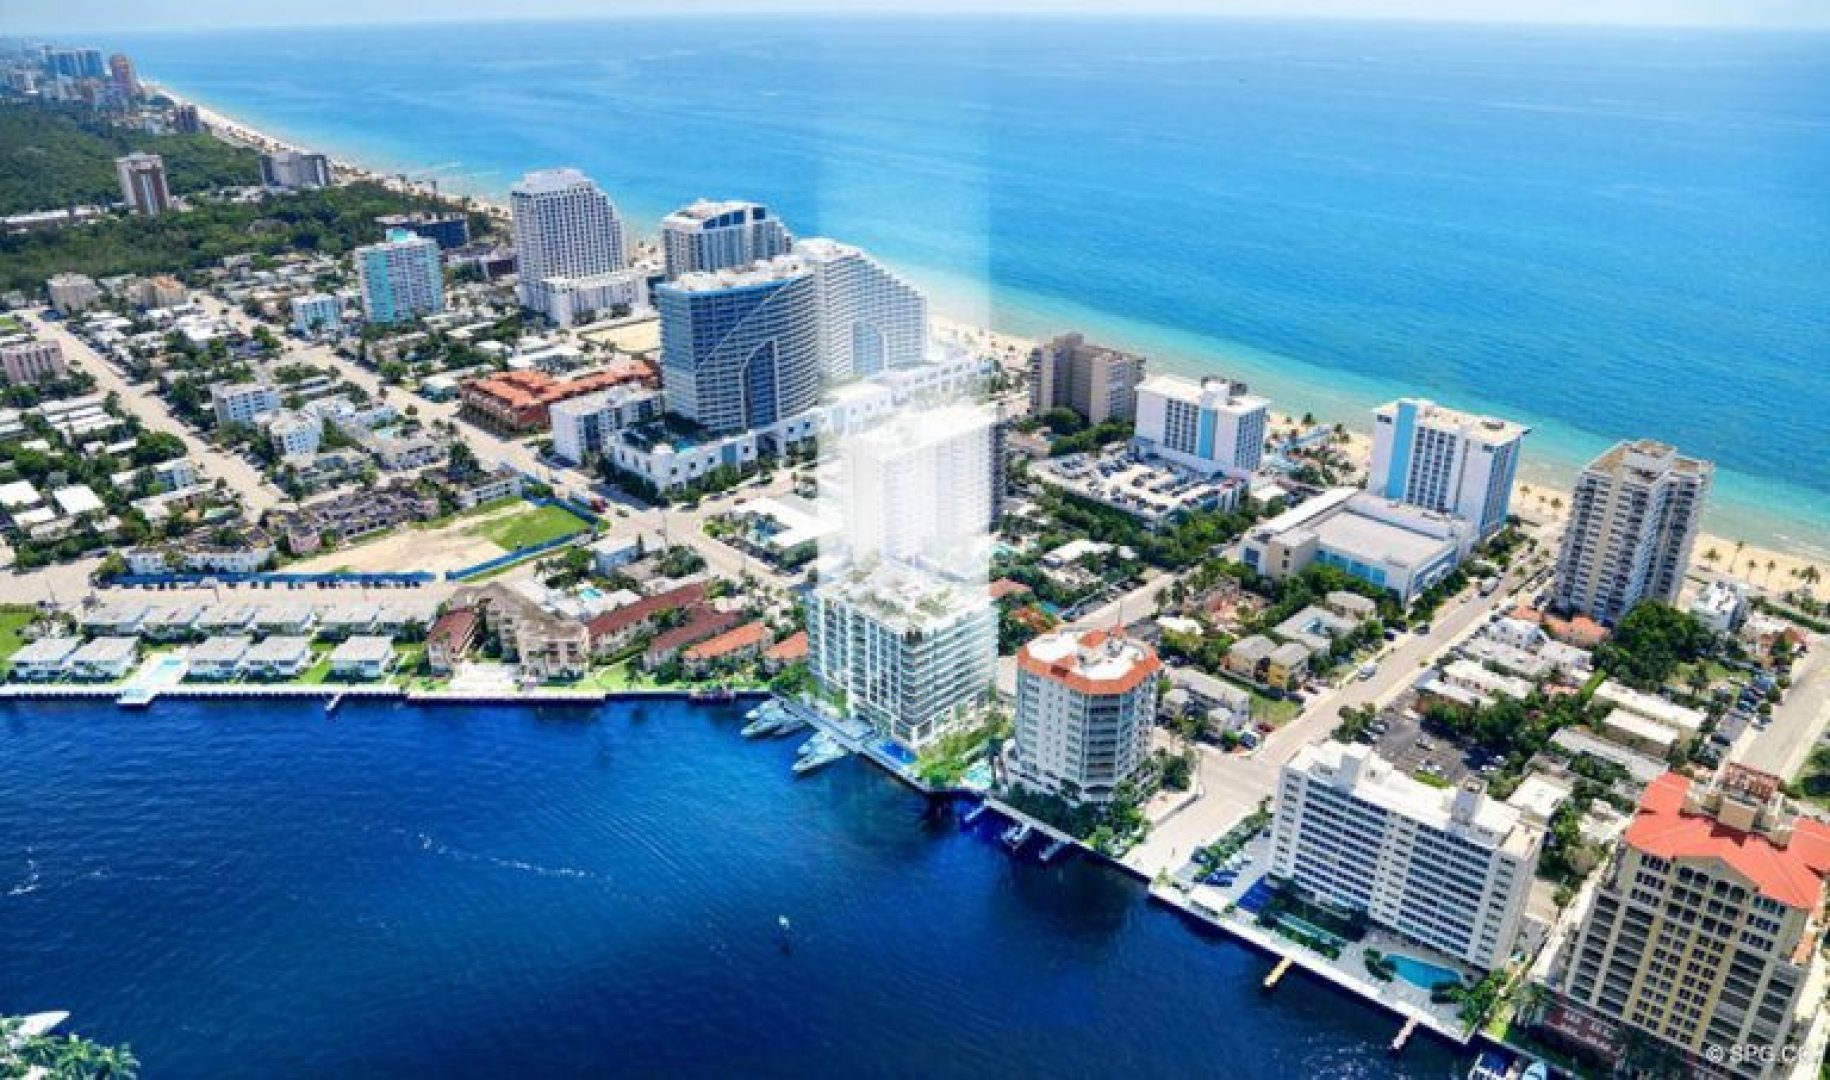 Northern View of 321 at Water's Edge, Luxury Waterfront Condos in Fort Lauderdale, Florida 33304